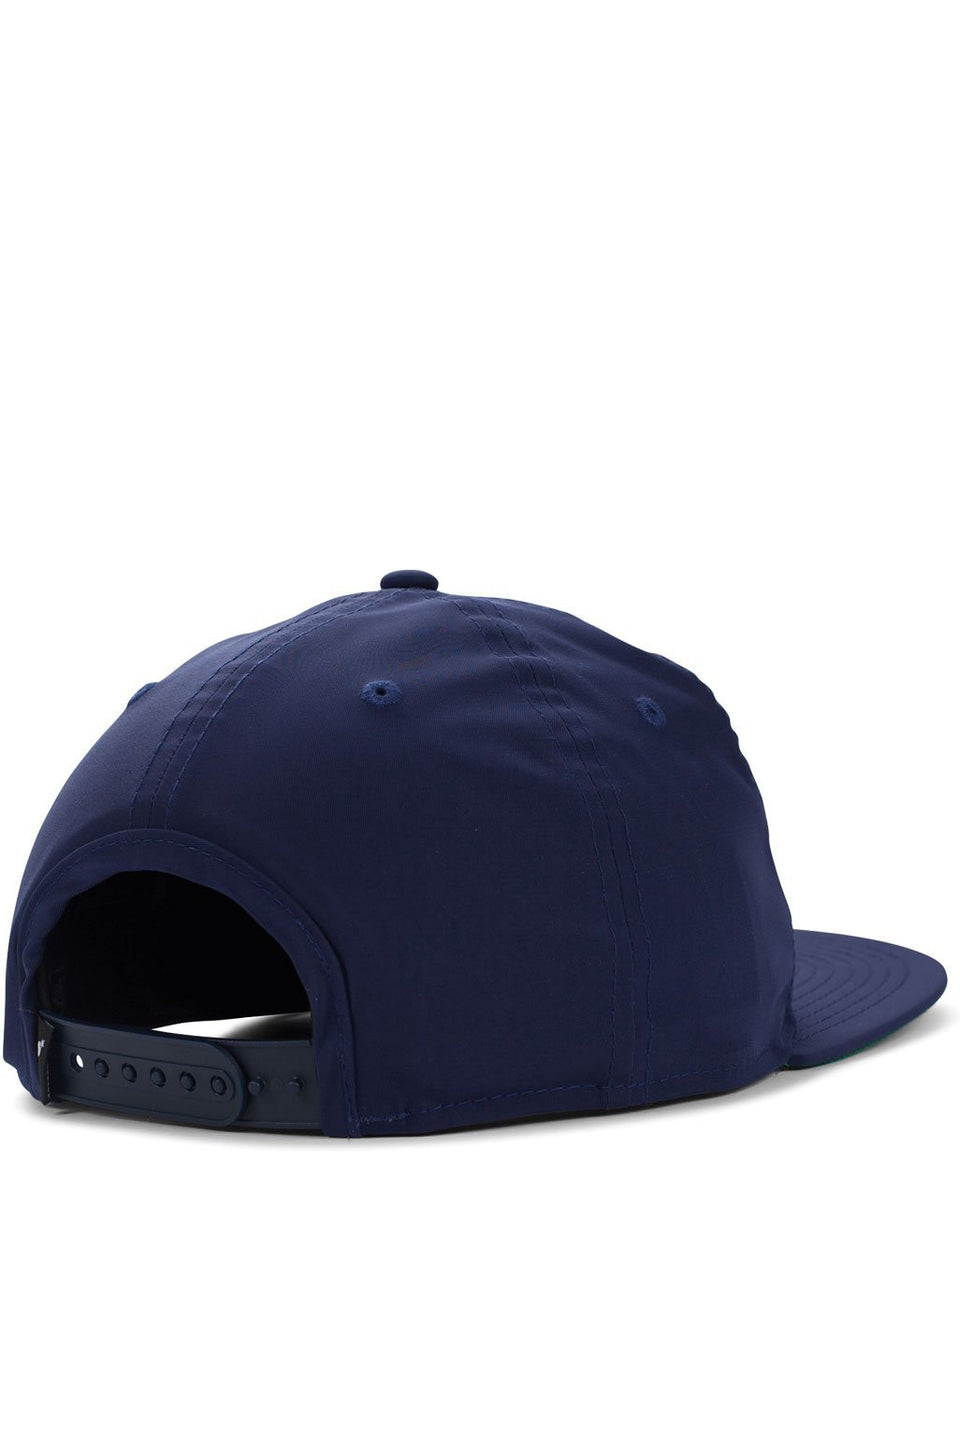 Law Snapback-HEADWEAR-The Hundreds UK